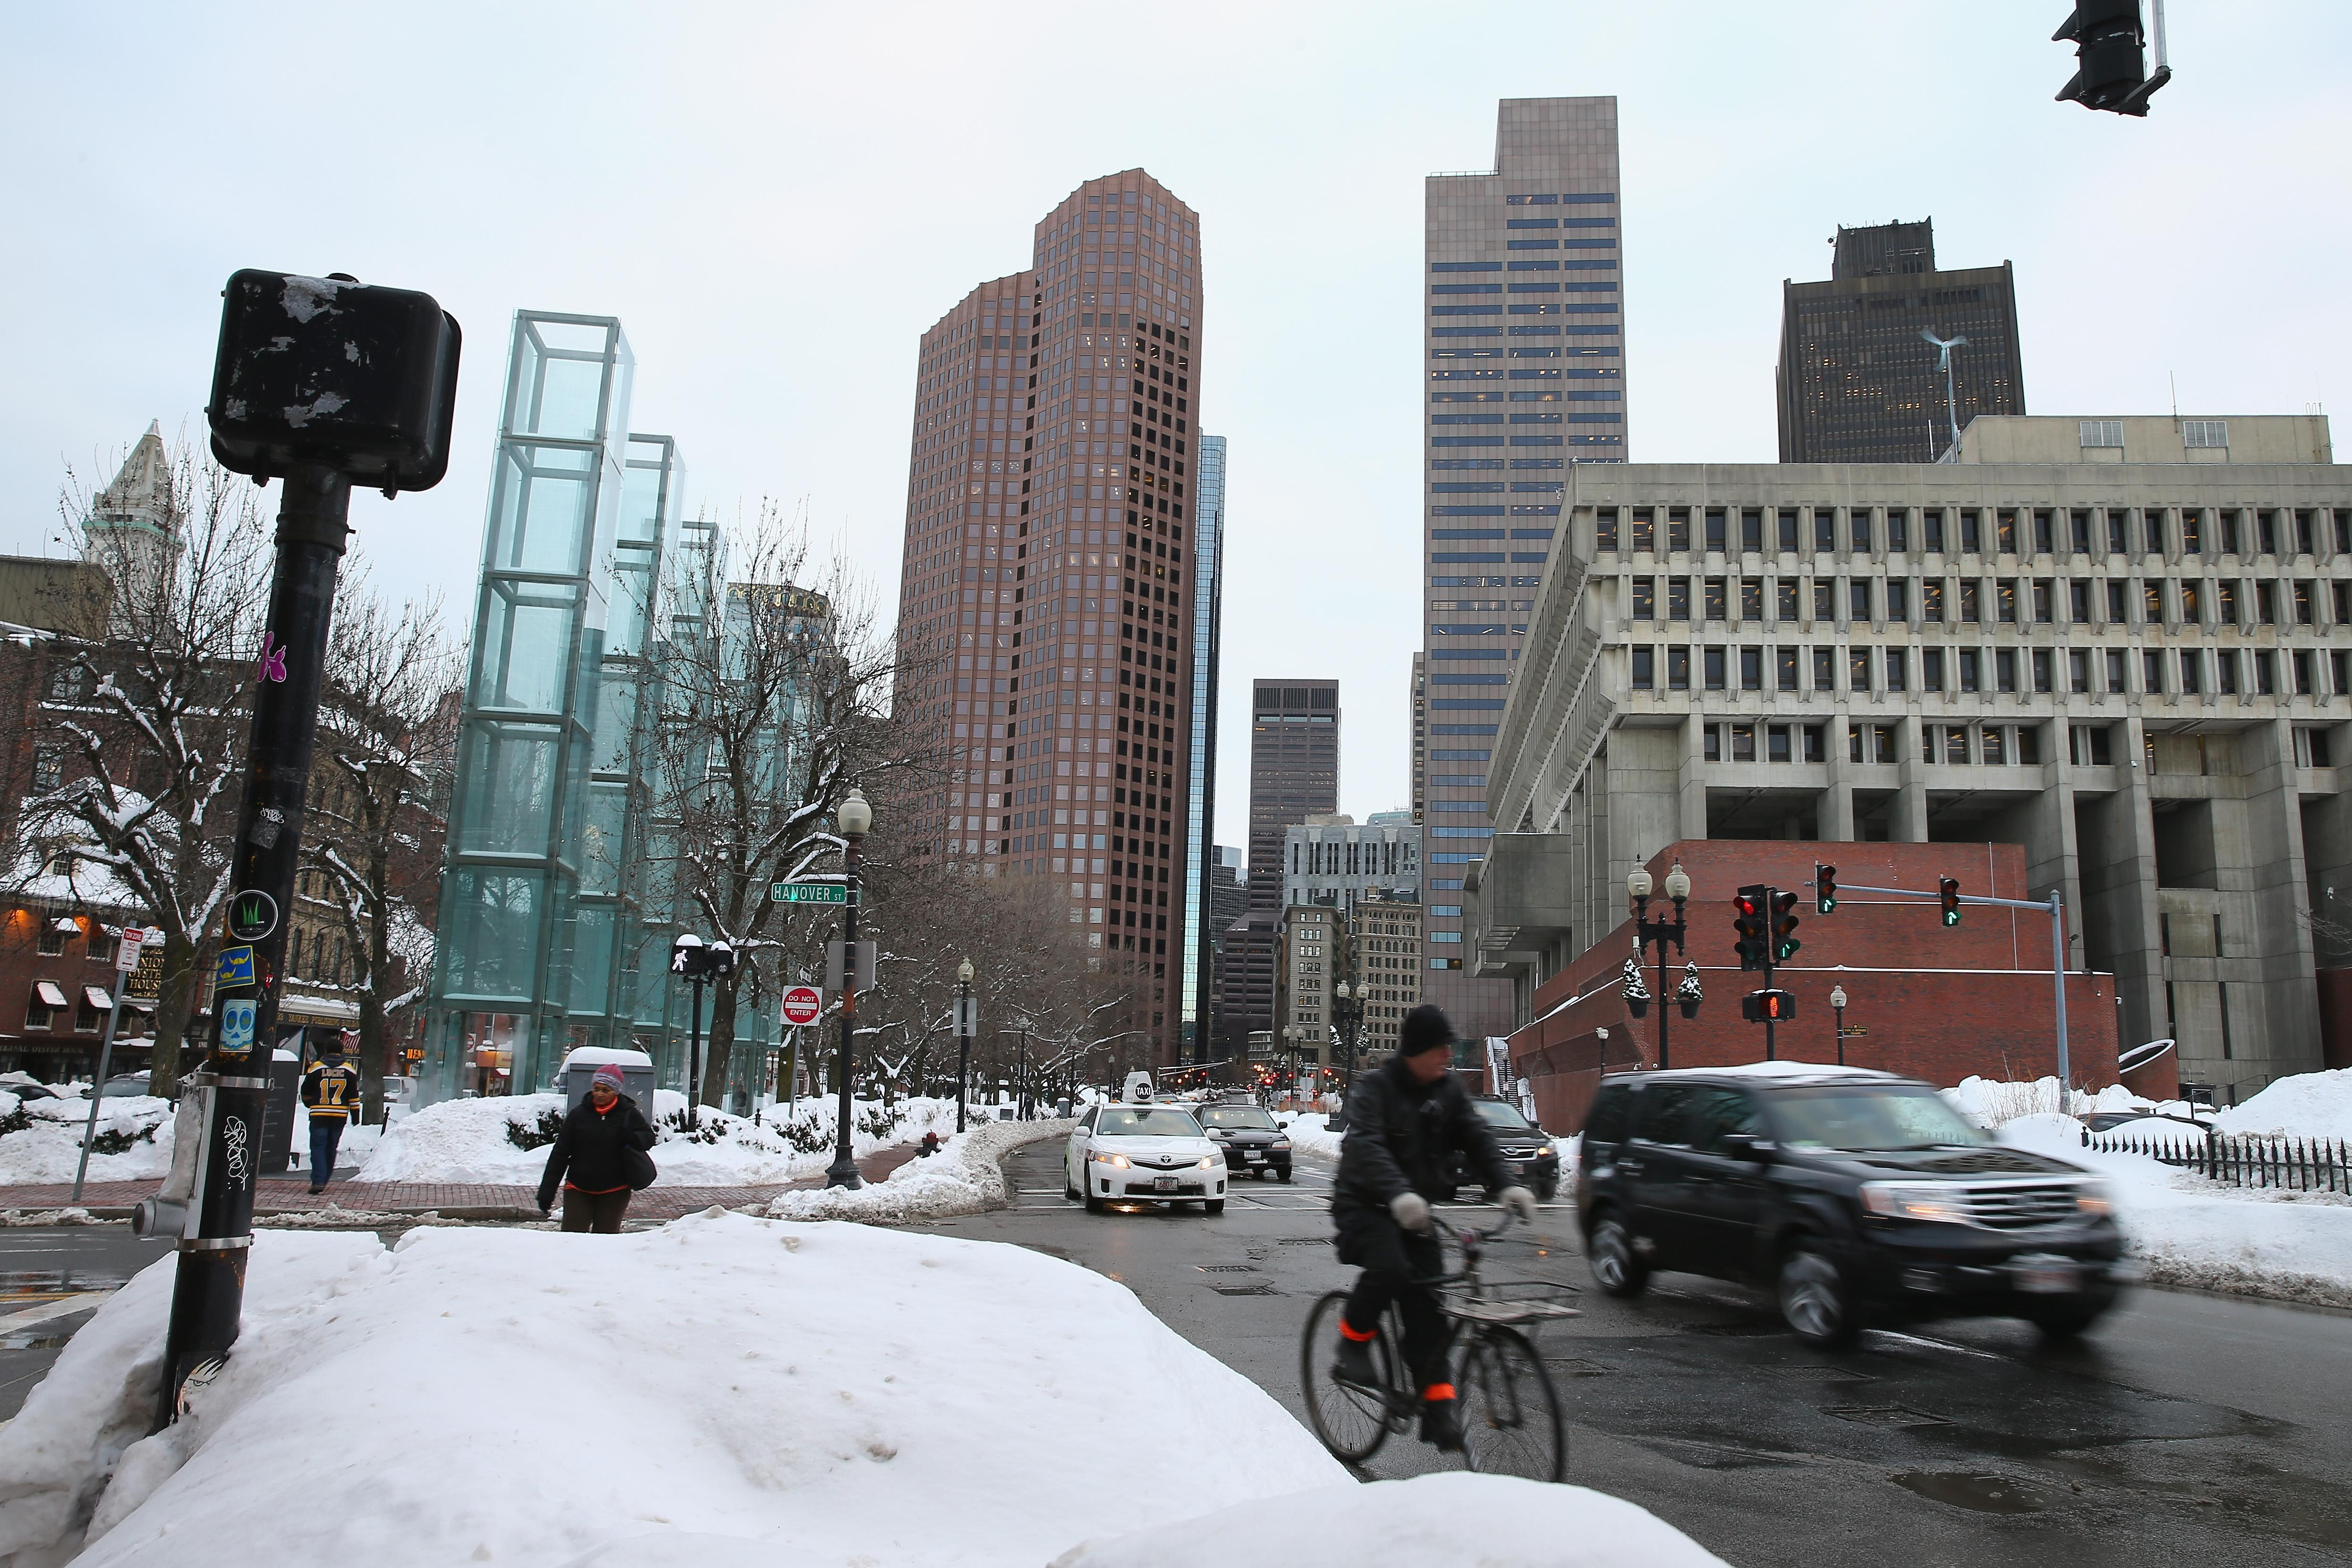 Cars and a biker at a snowy intersection in Boston.